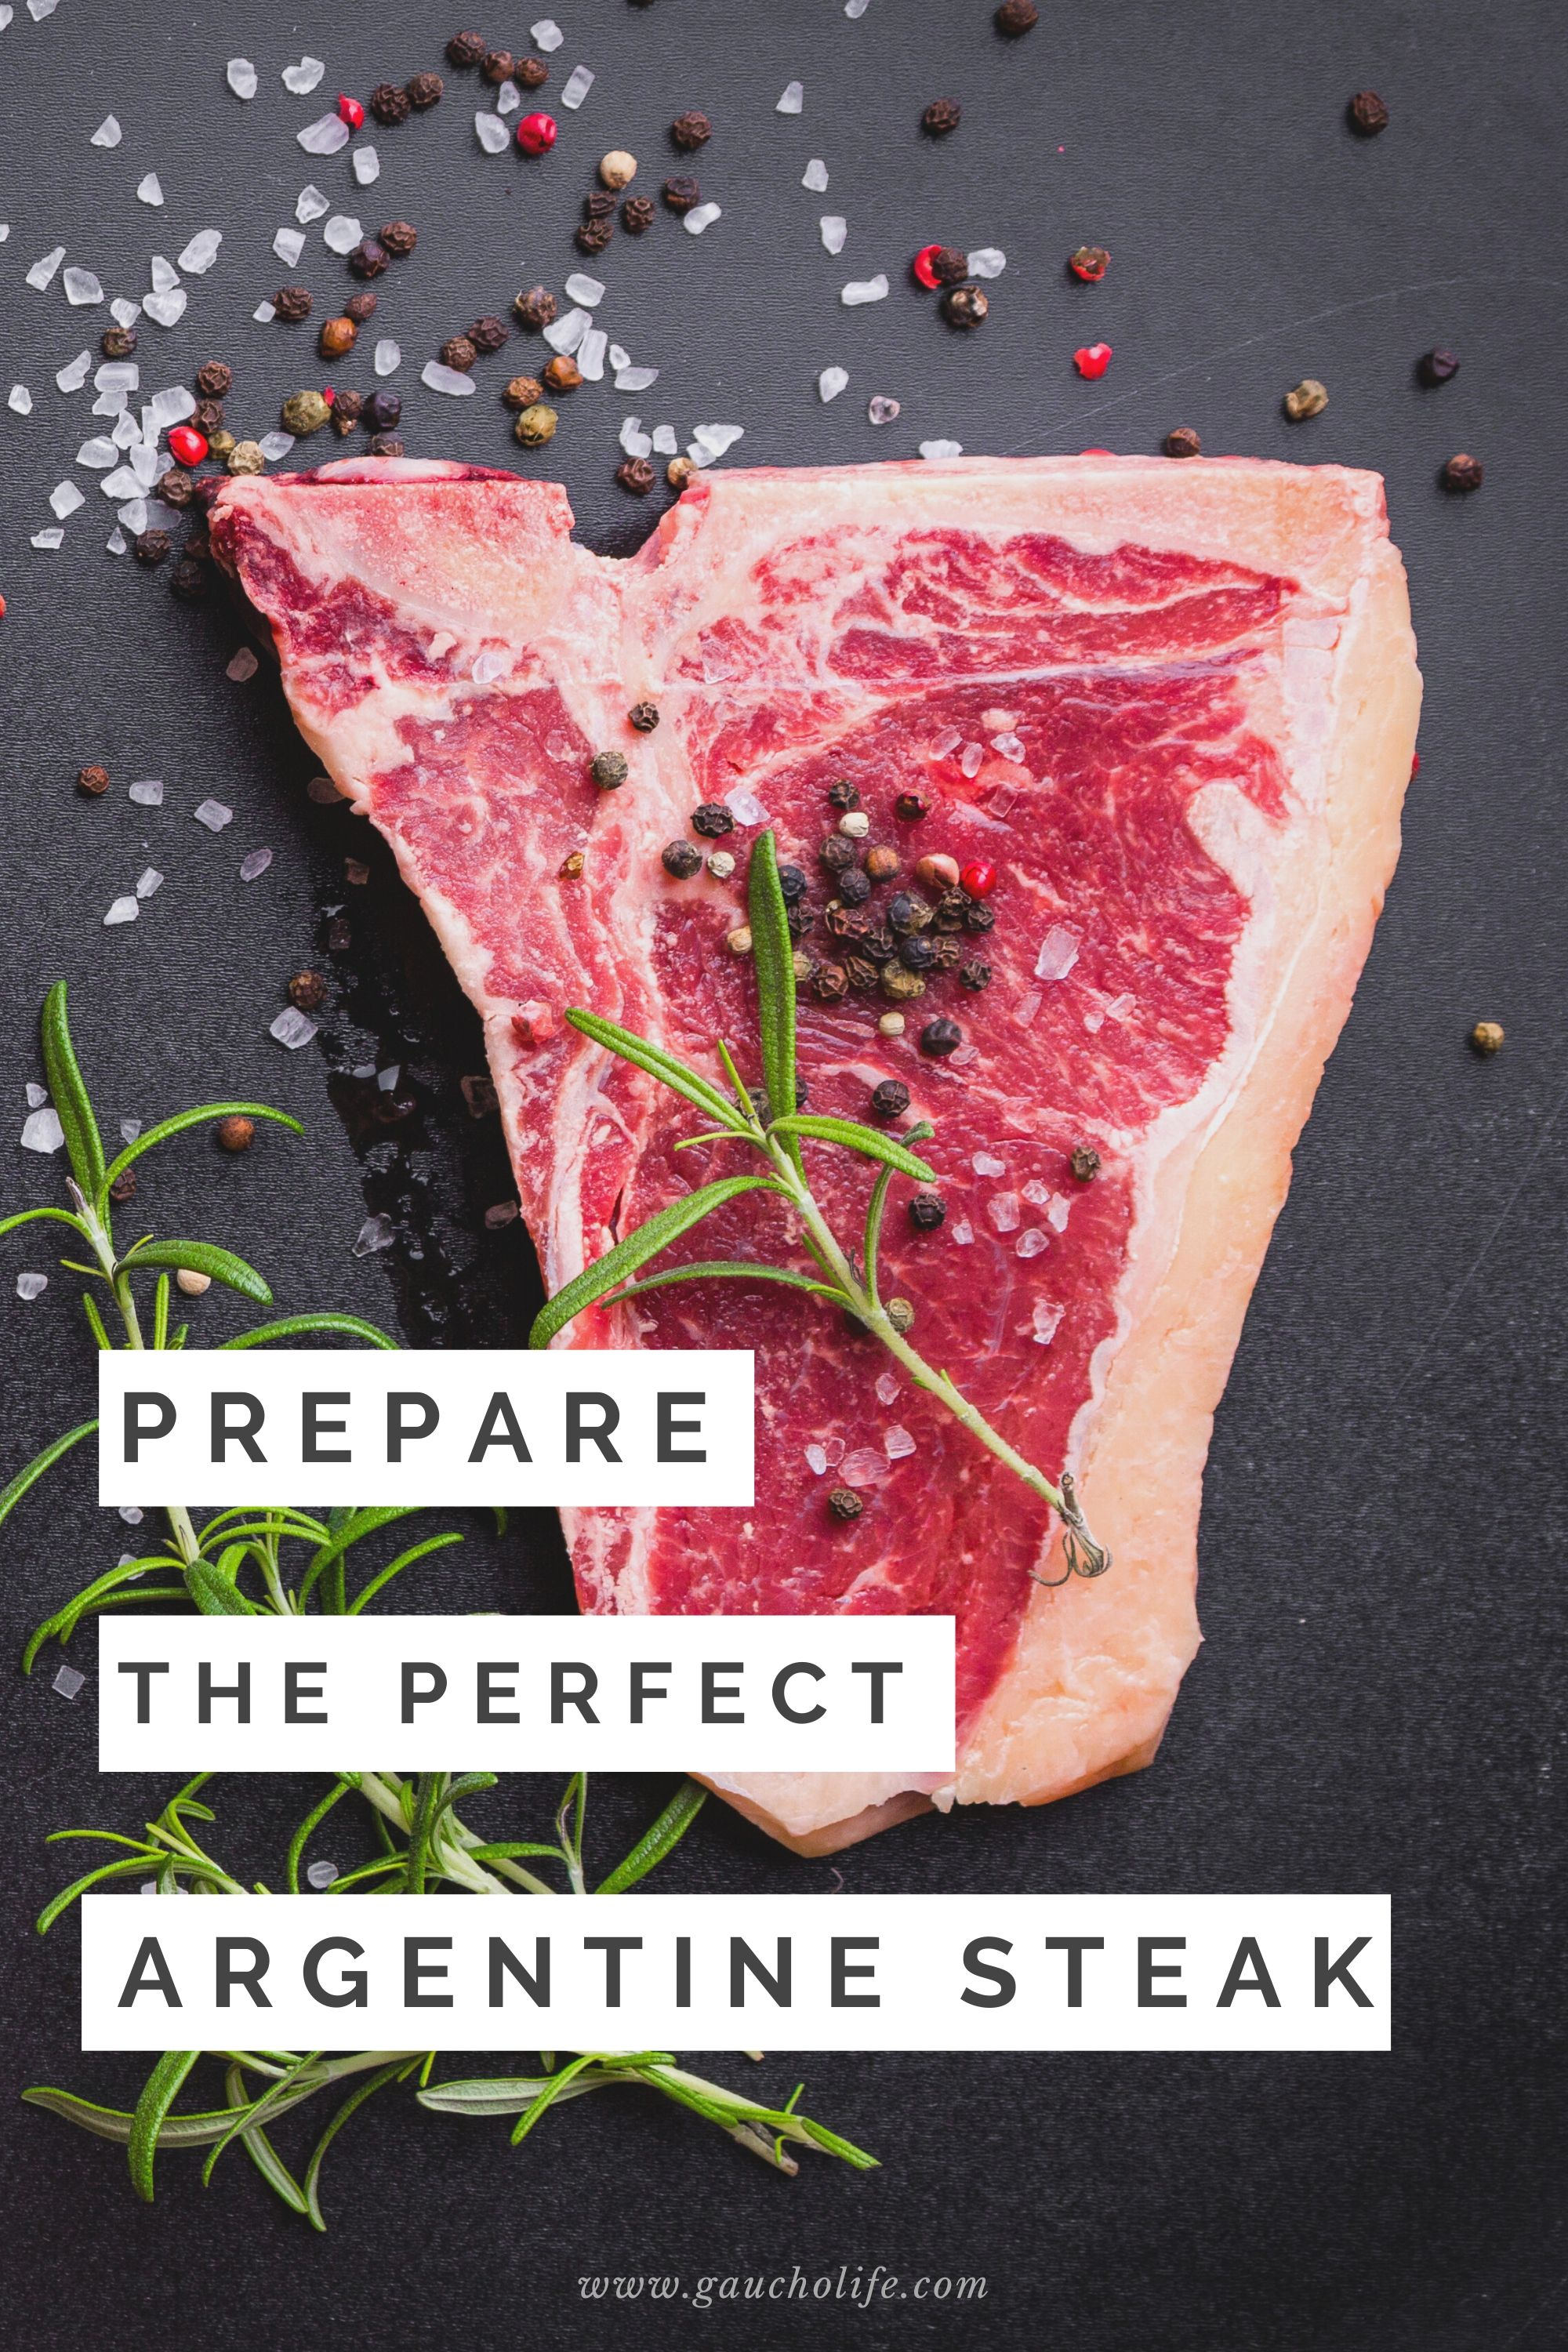 How To Grill The Perfect Steak Argentine Style In 2020 Grilling The Perfect Steak How To Grill Steak Perfect Steak